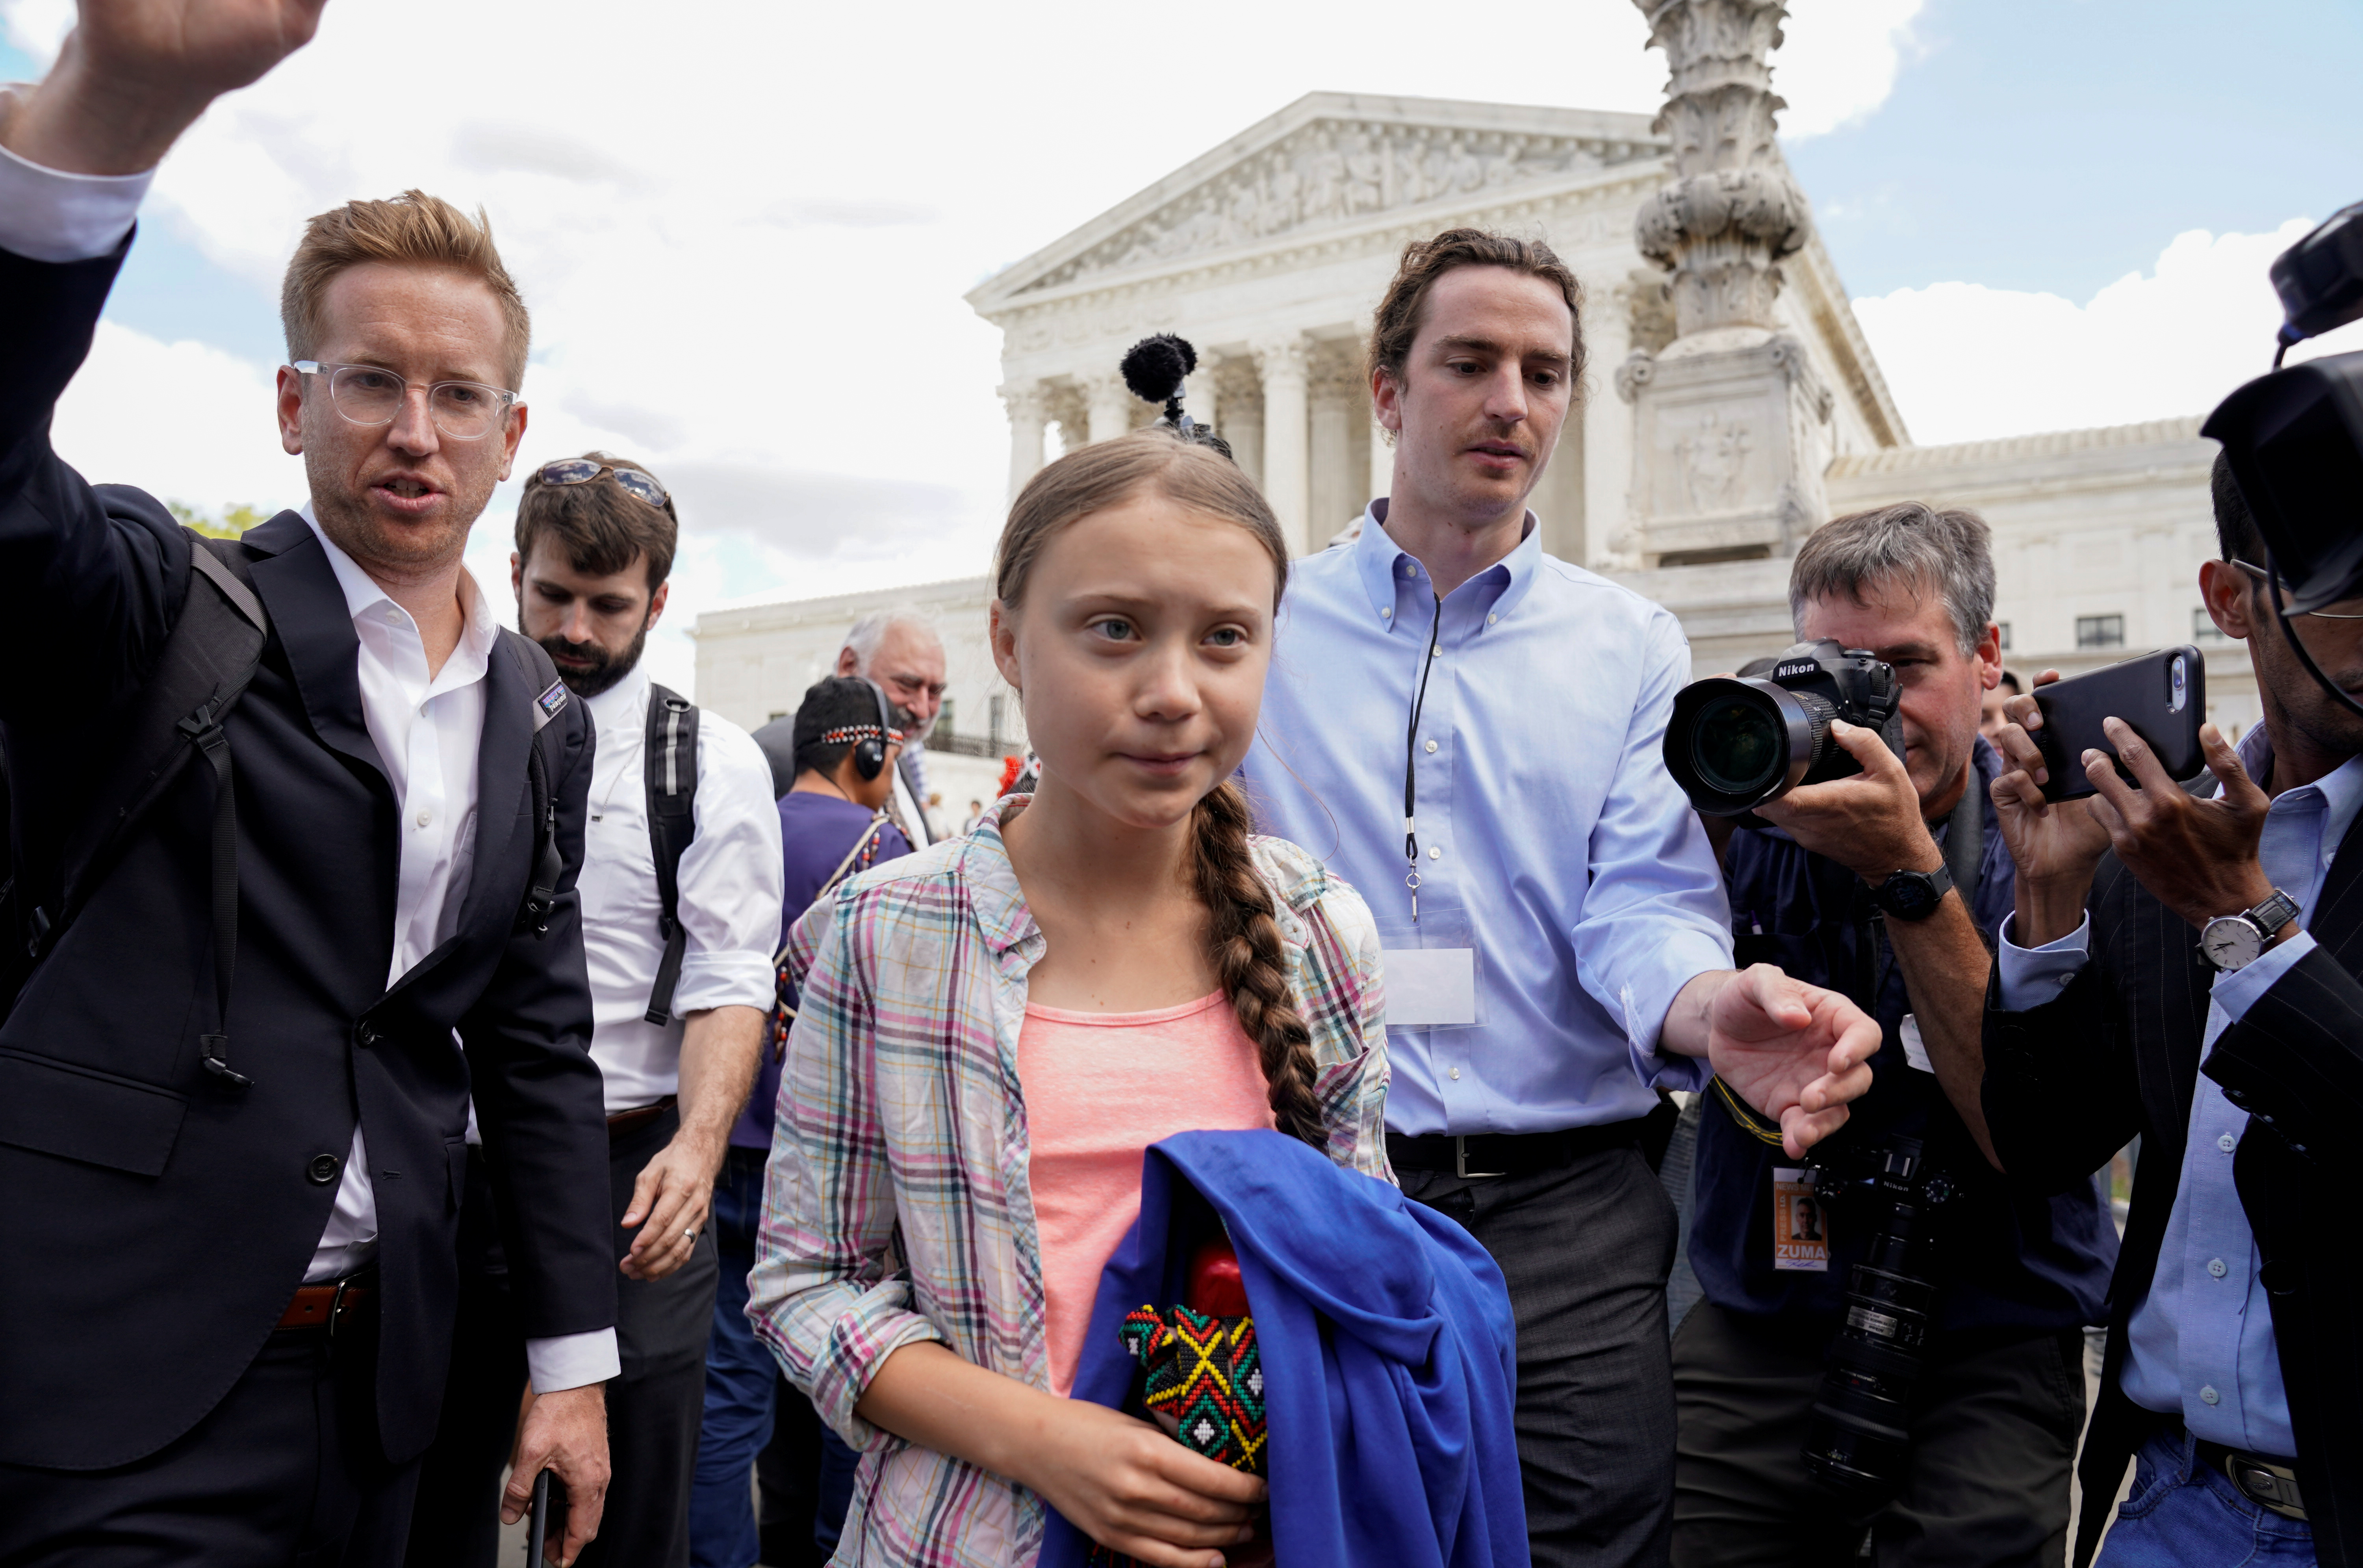 Sixteen year-old Swedish climate activist Greta Thunberg departs after attending a demonstration at the U.S. Supreme Court in Washington, U.S., September 18, 2019. REUTERS/Kevin Lamarque